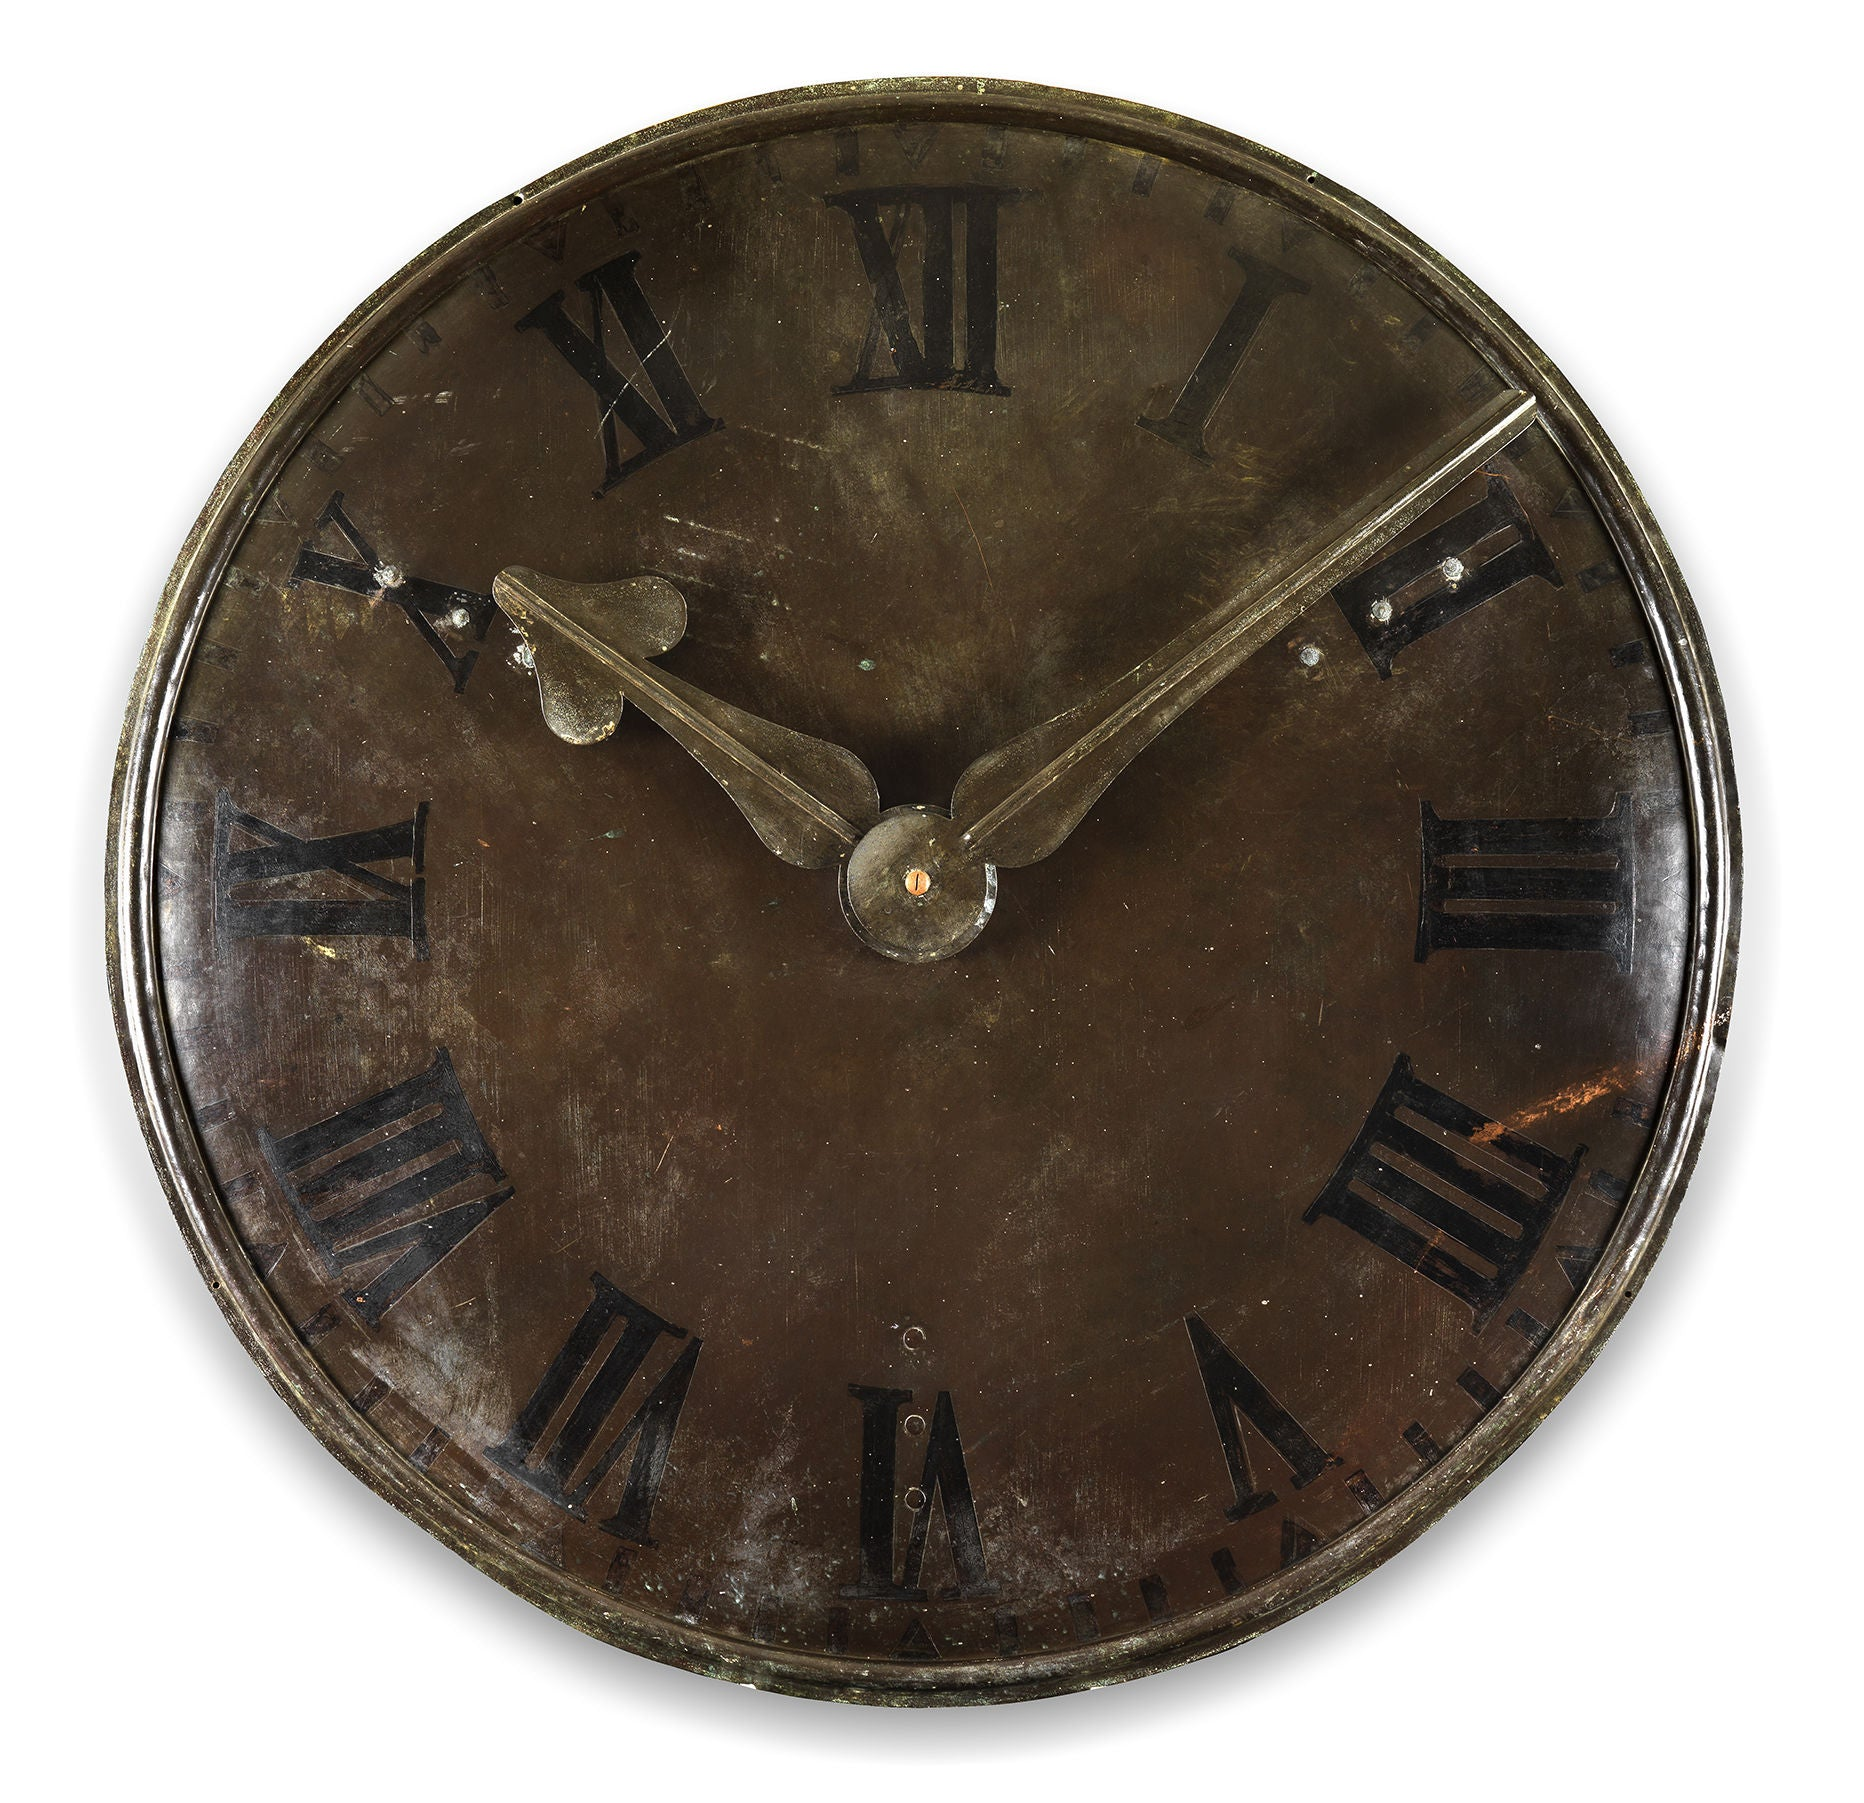 Fine Large Early Architectural Clock Face